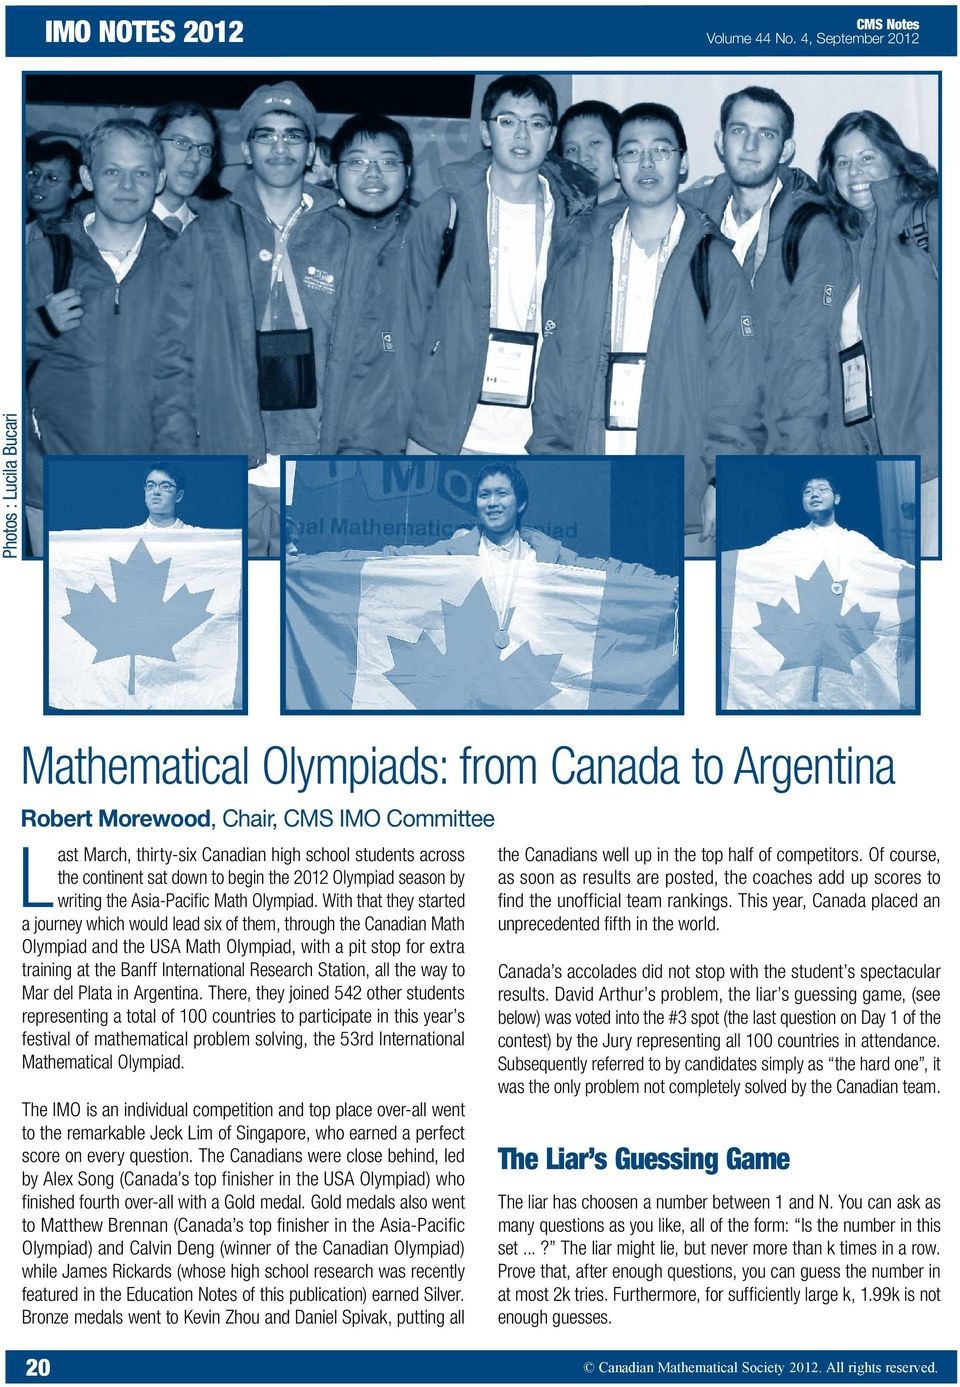 continent sat down to begin the 2012 Olympiad season by writing the Asia-Pacific Math Olympiad.